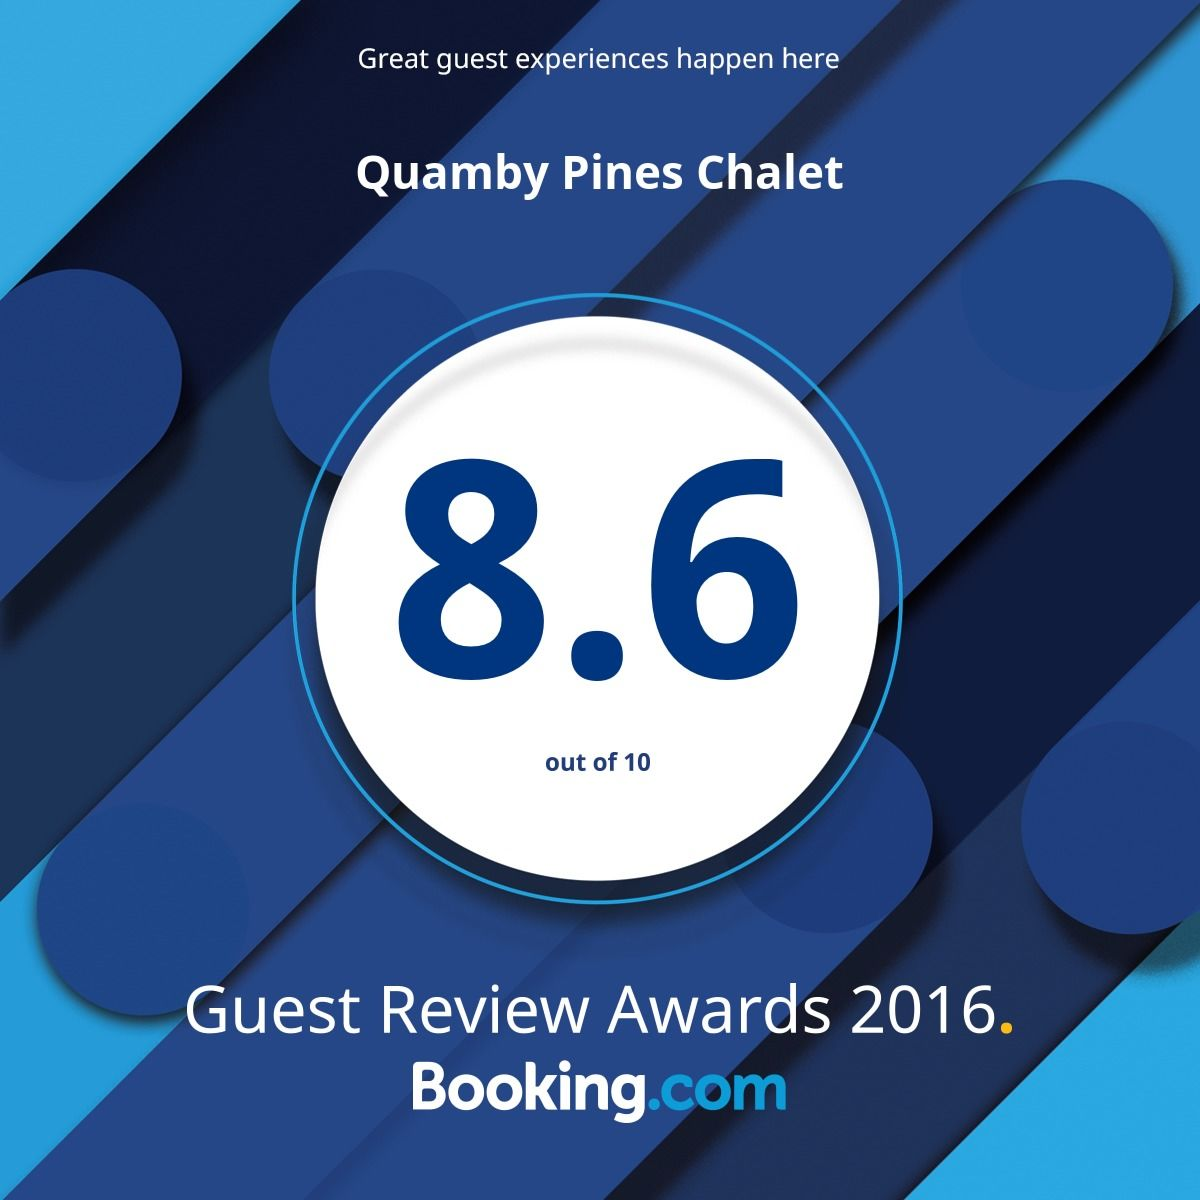 Booking.com rated 2016 Award Winning Quamby Pines 8.6